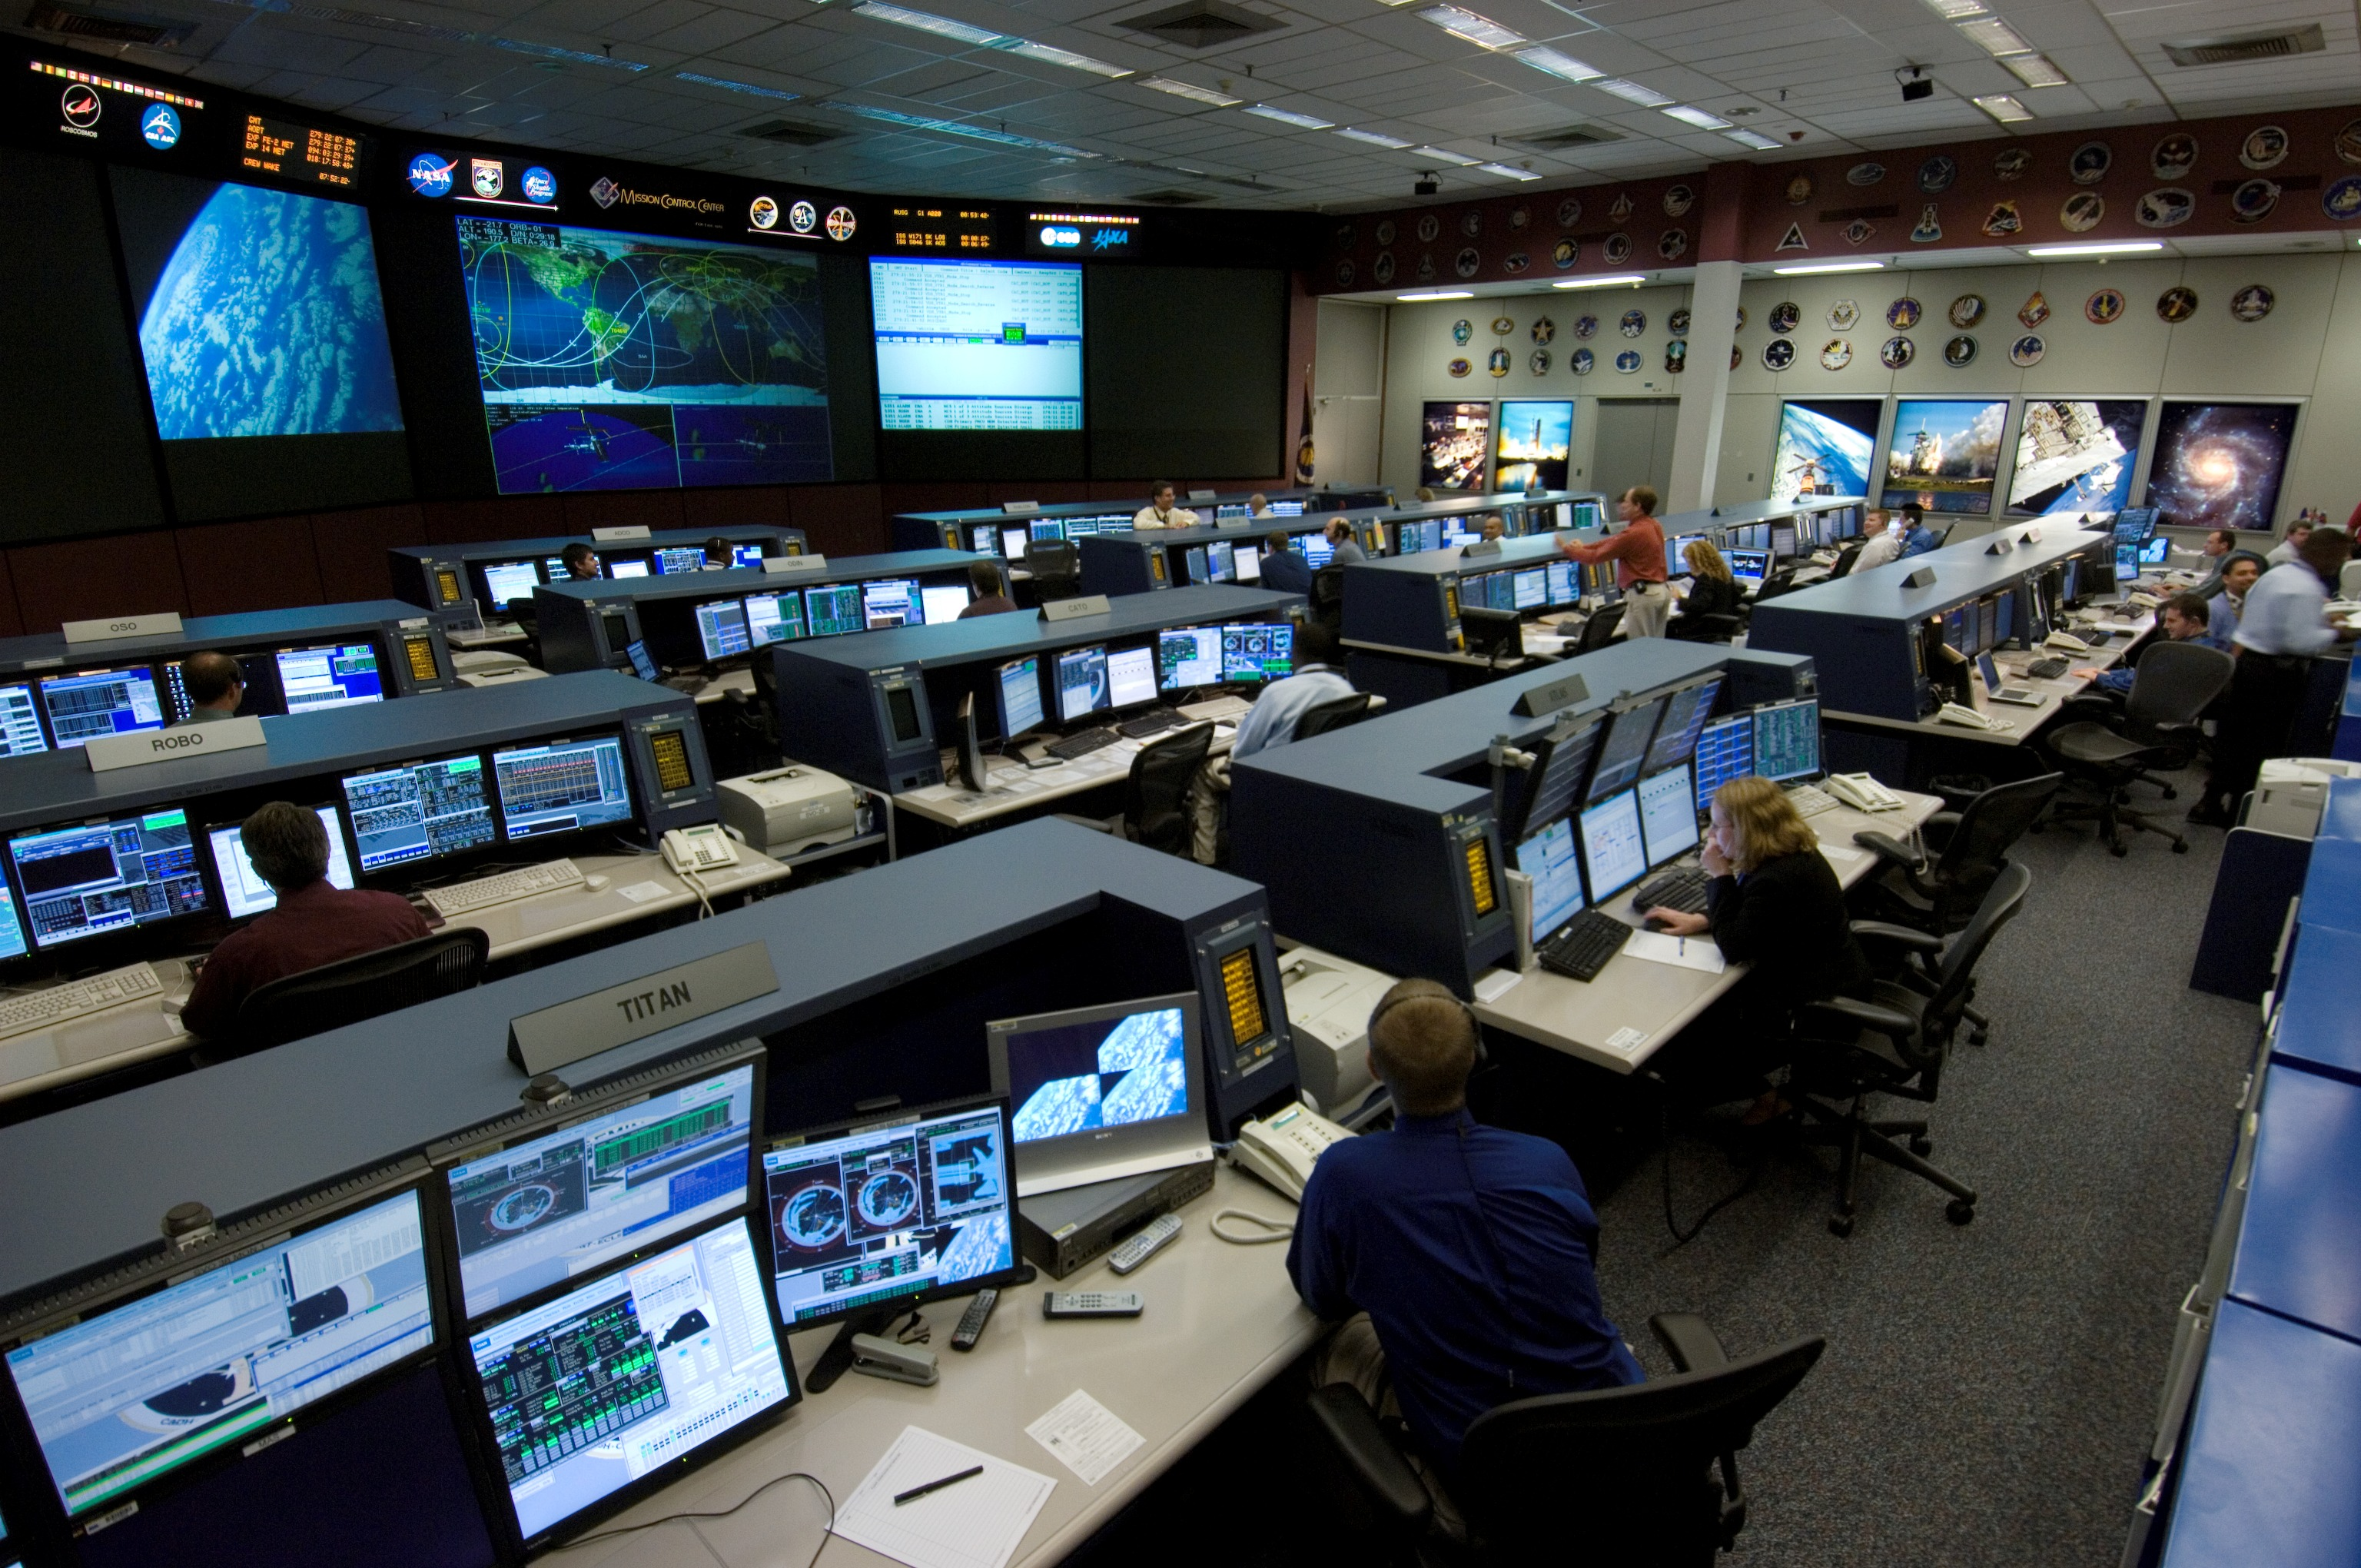 Inside Spaceship Control Room